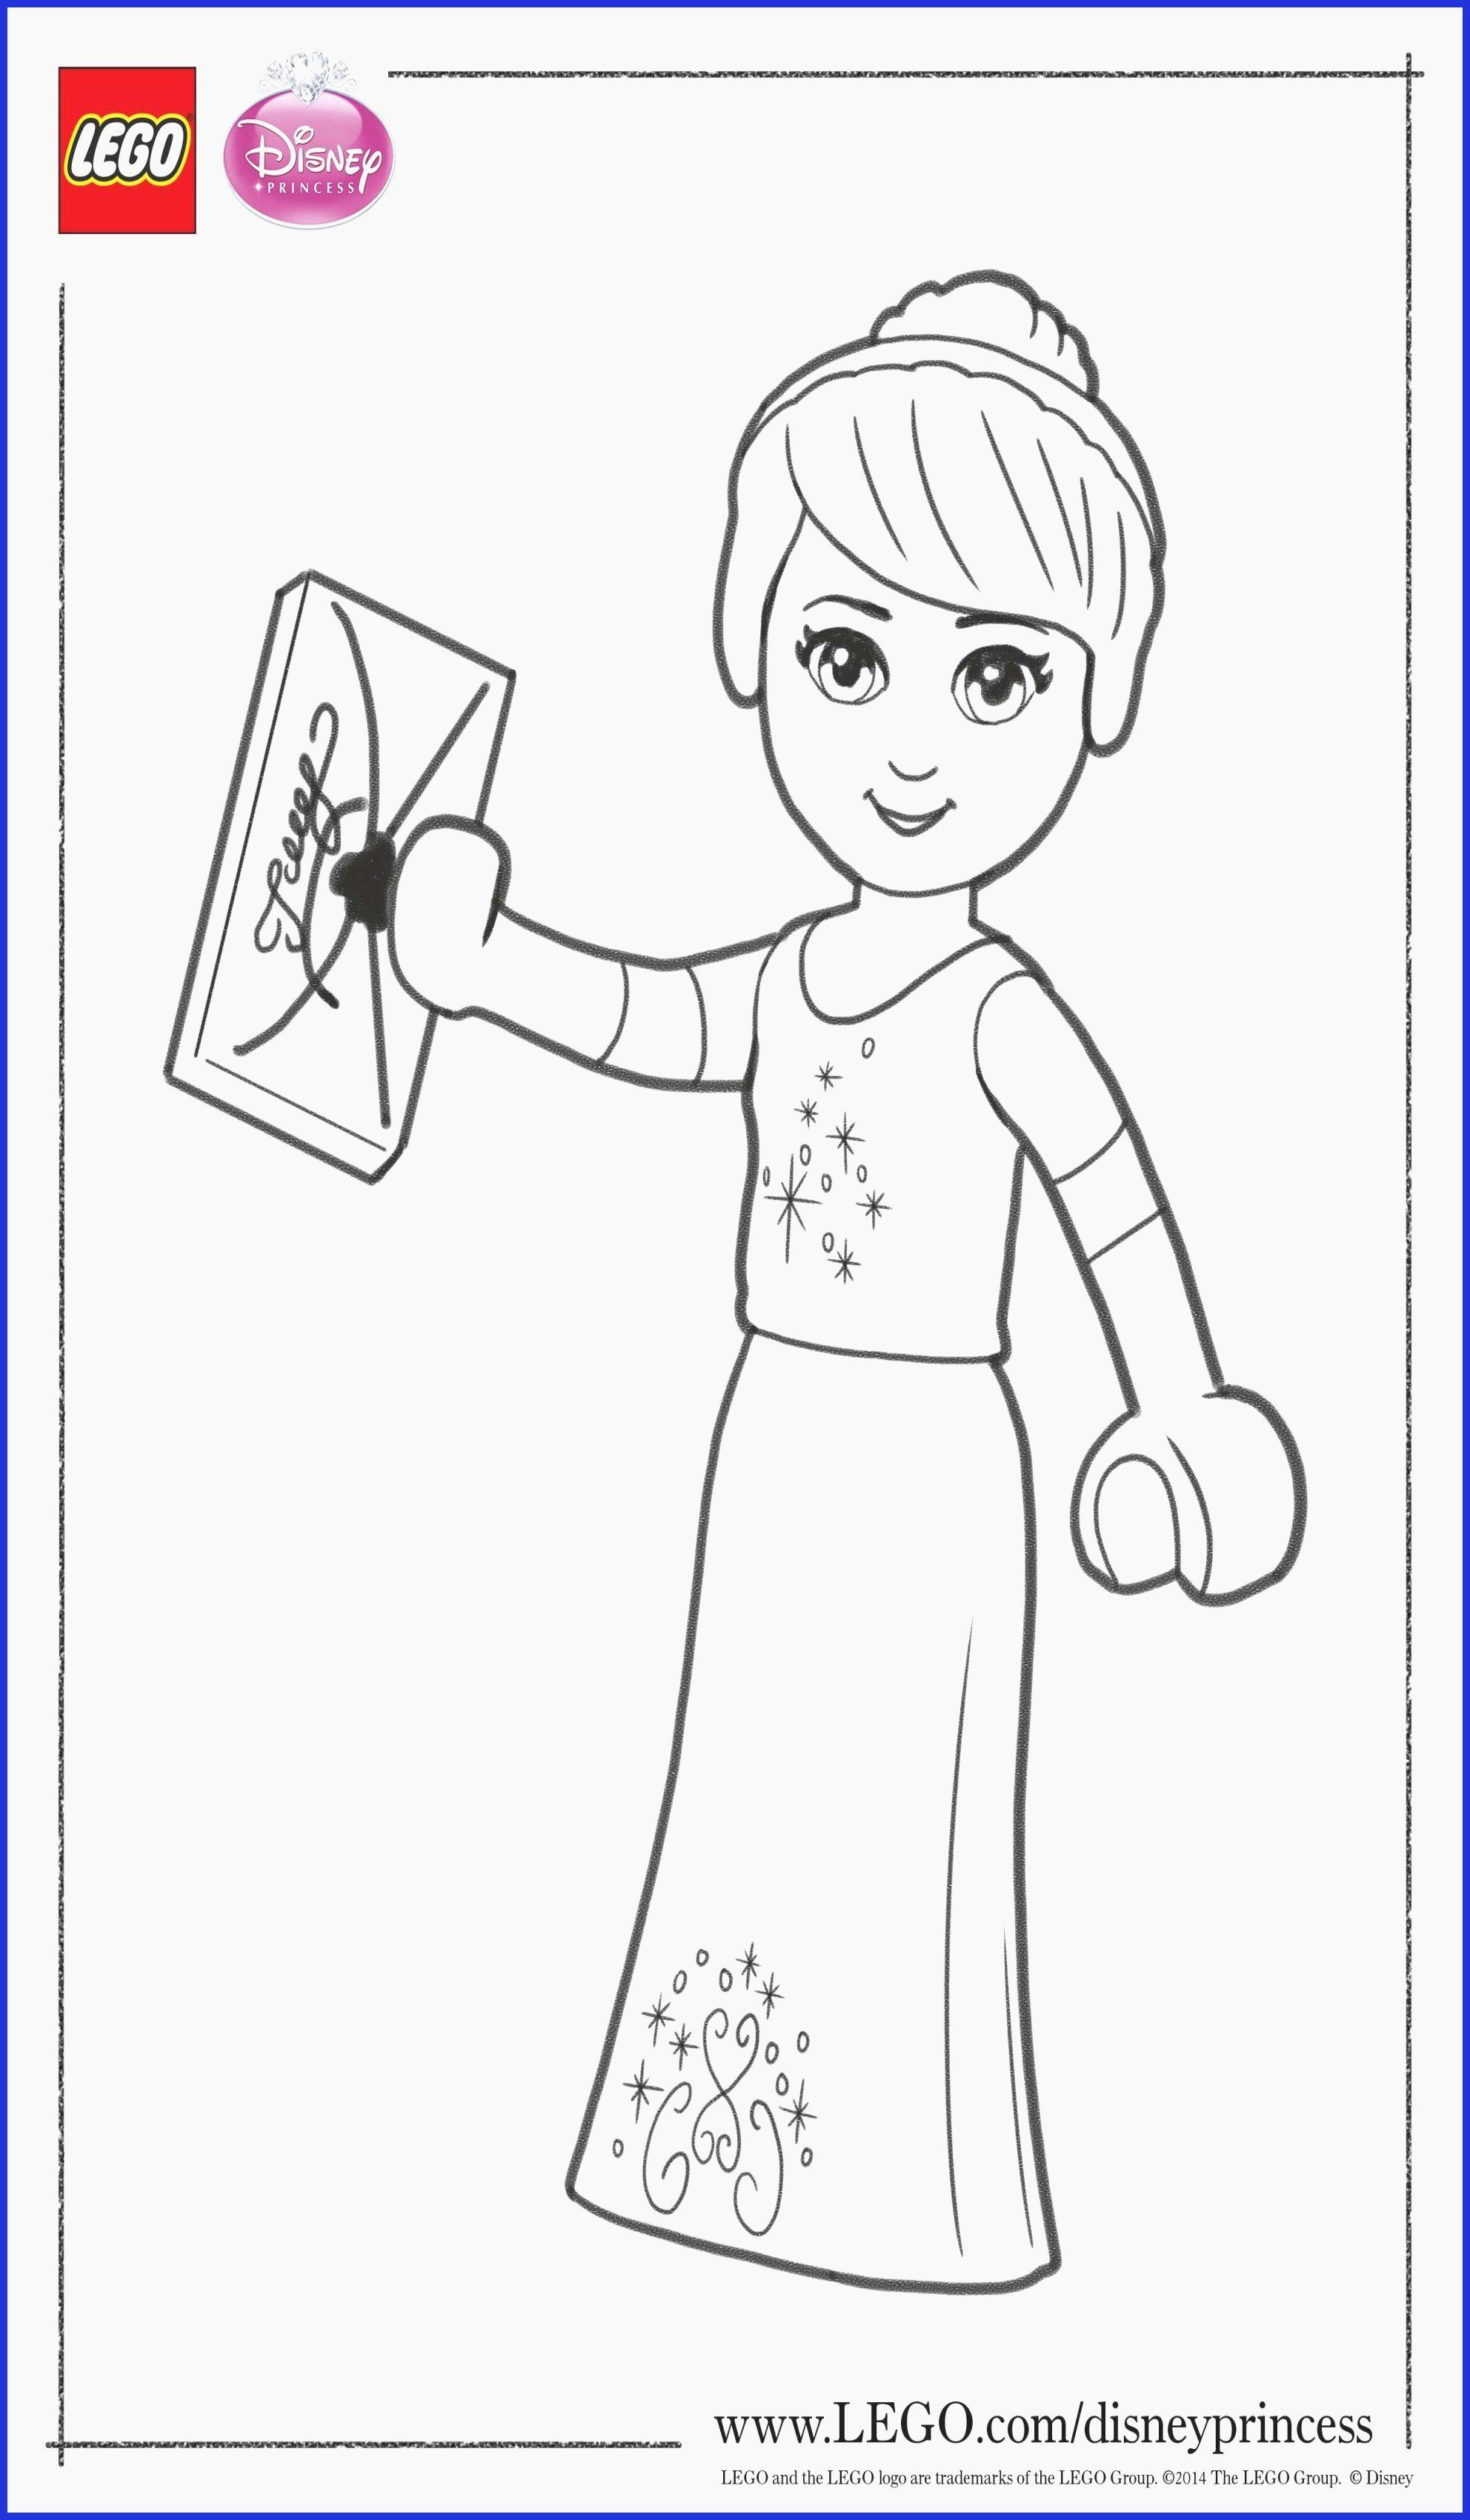 Number 16 Coloring Page Awesome Disney Princess Coloring Pages Free To Print Unique 16